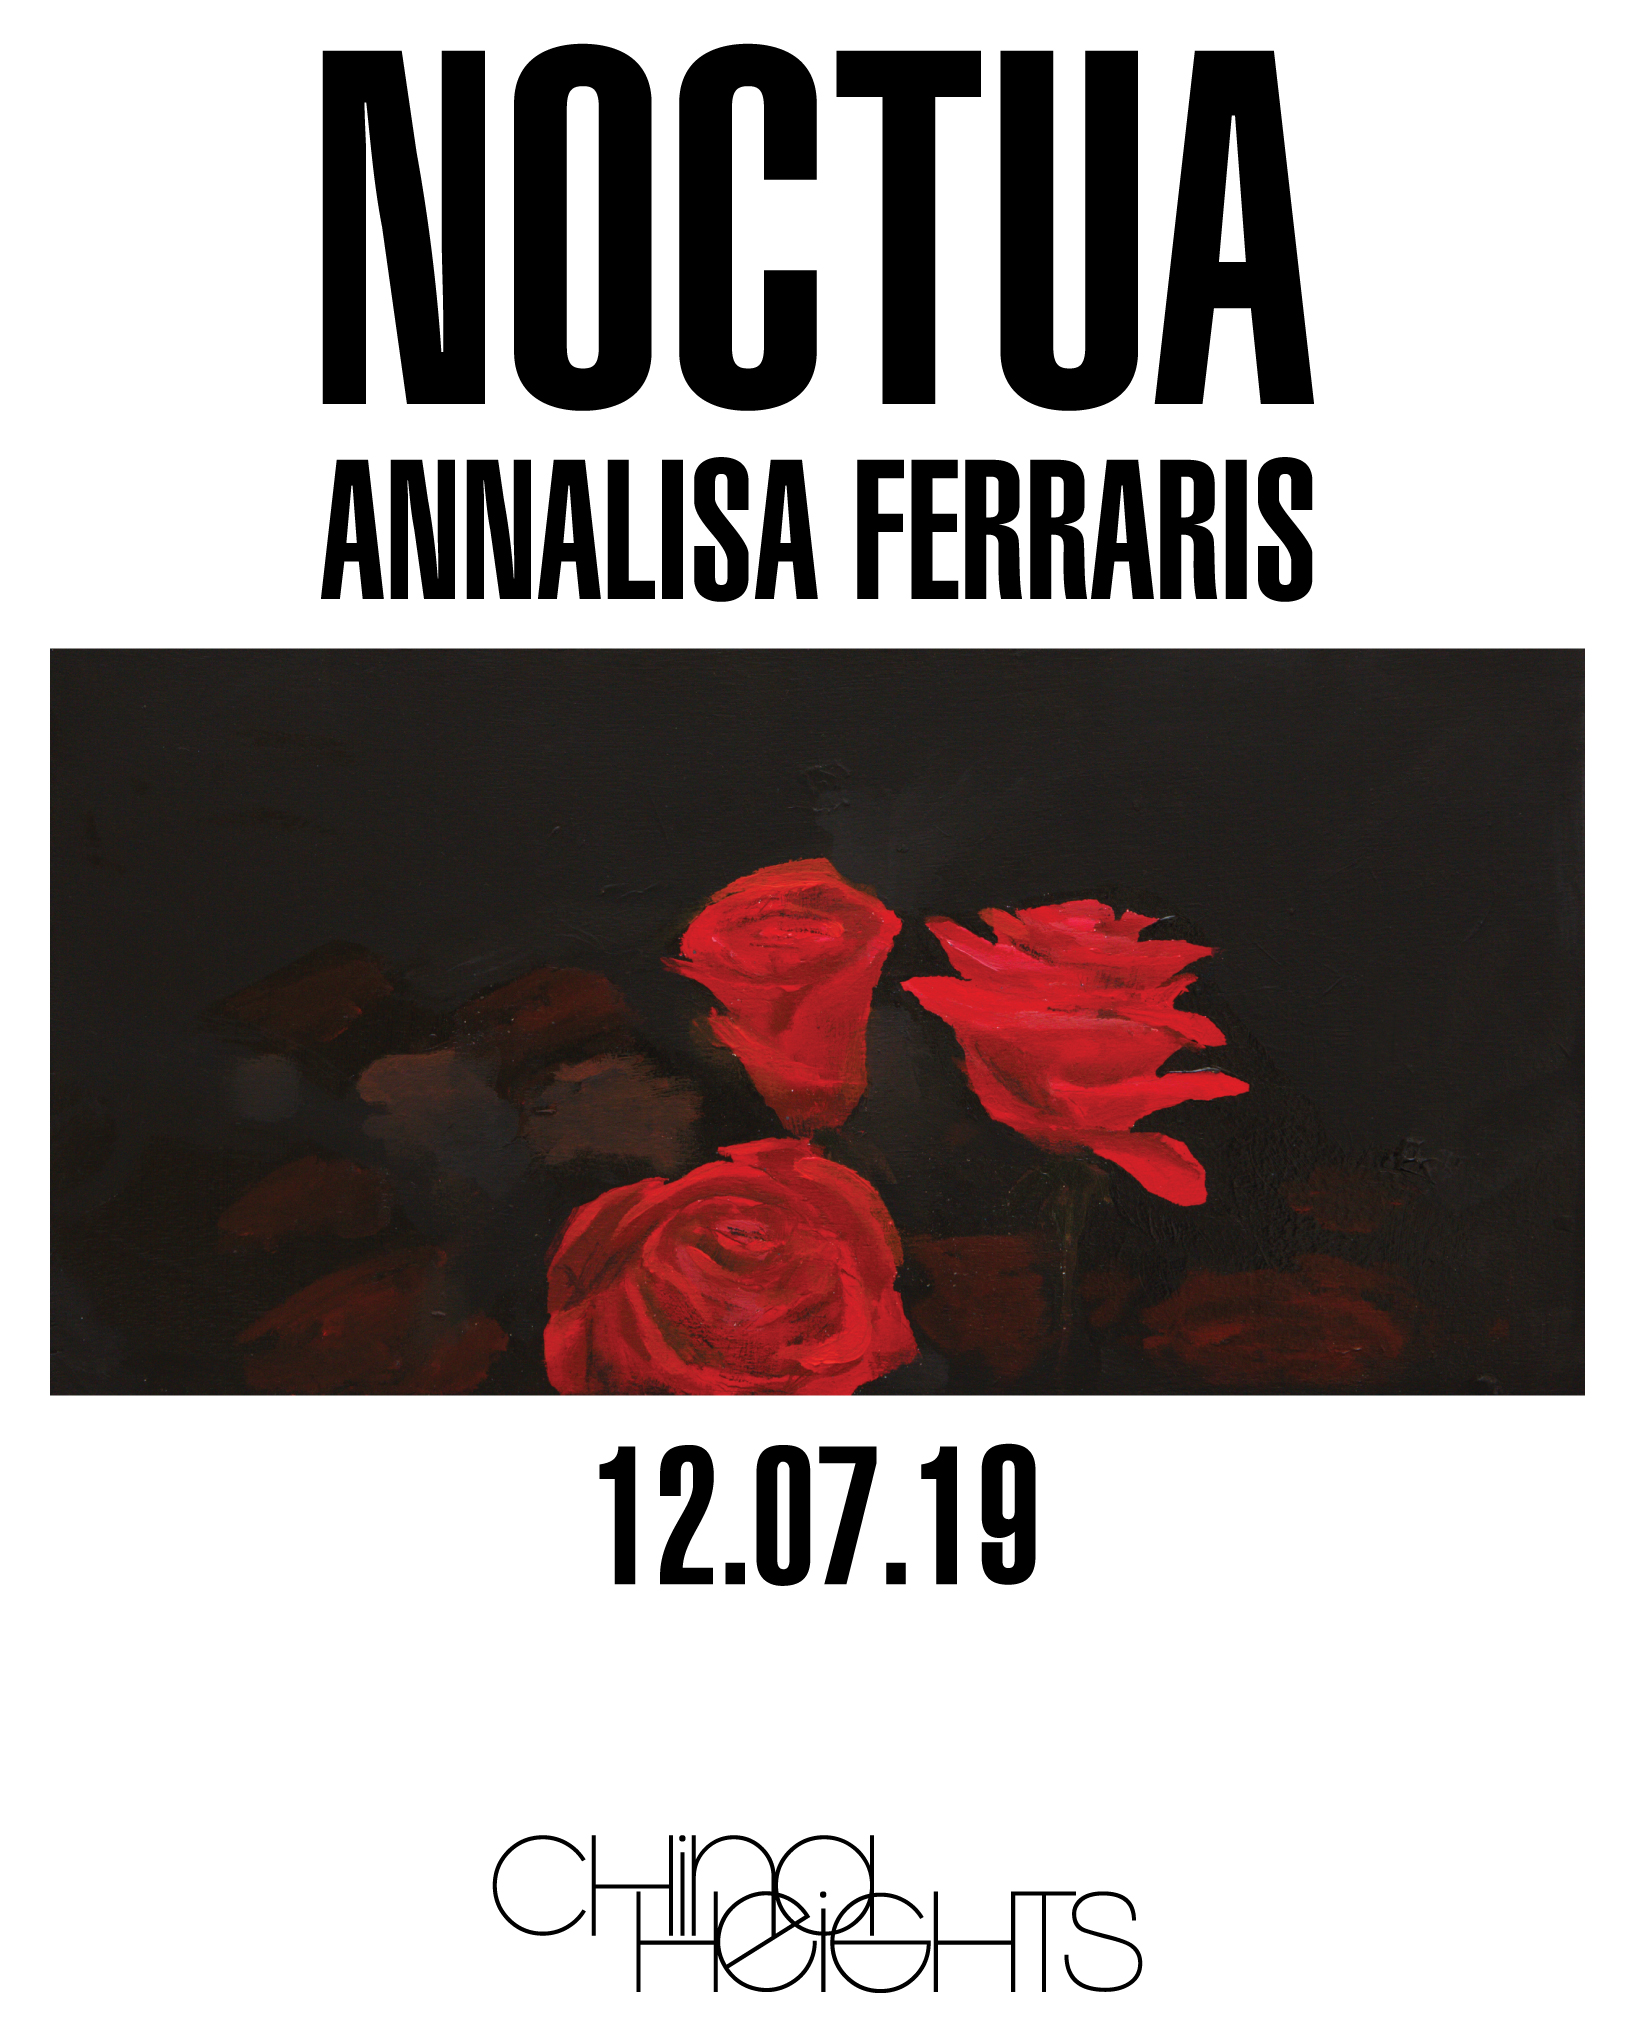 Noctua - Annalisa FerrarisOpens 6pm - 8pm, 12.07.19Continues 12-5pm until 20.07.19, or by appointment.